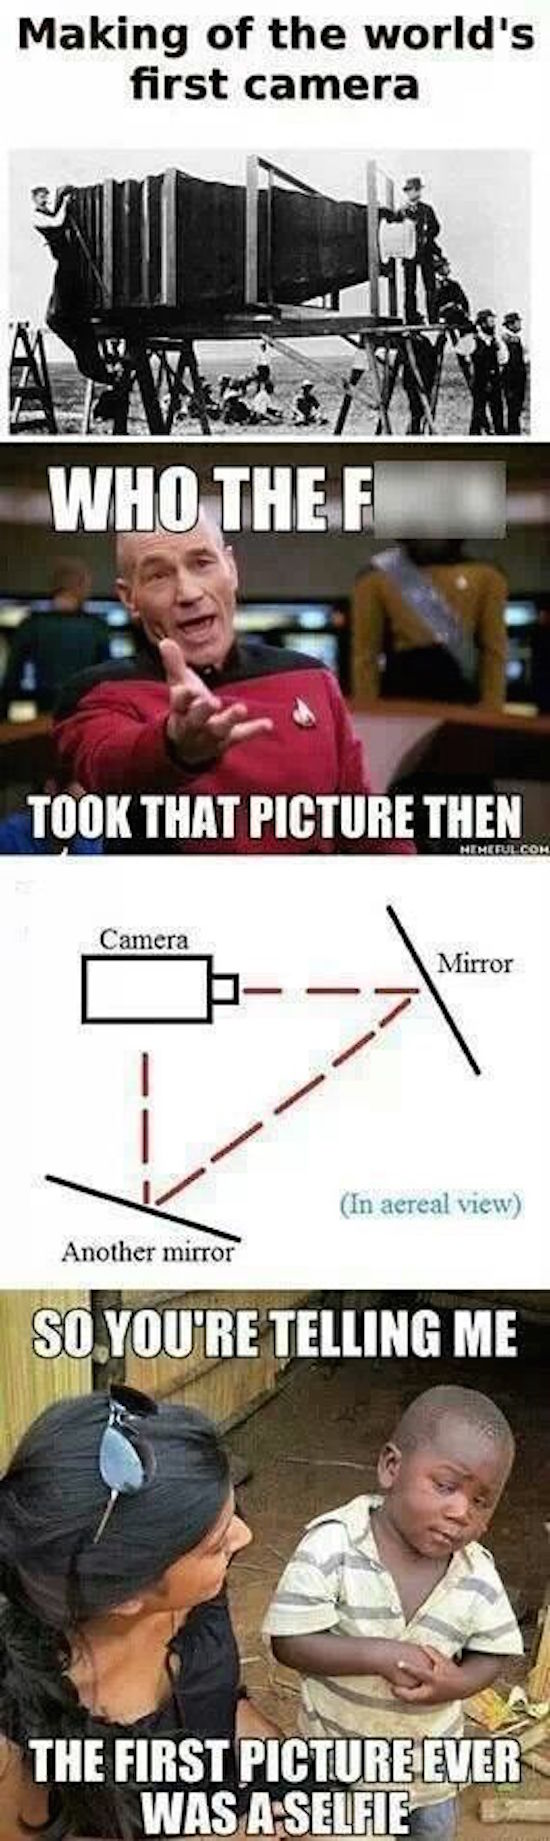 funny pictures of the first picture ever is a selfie